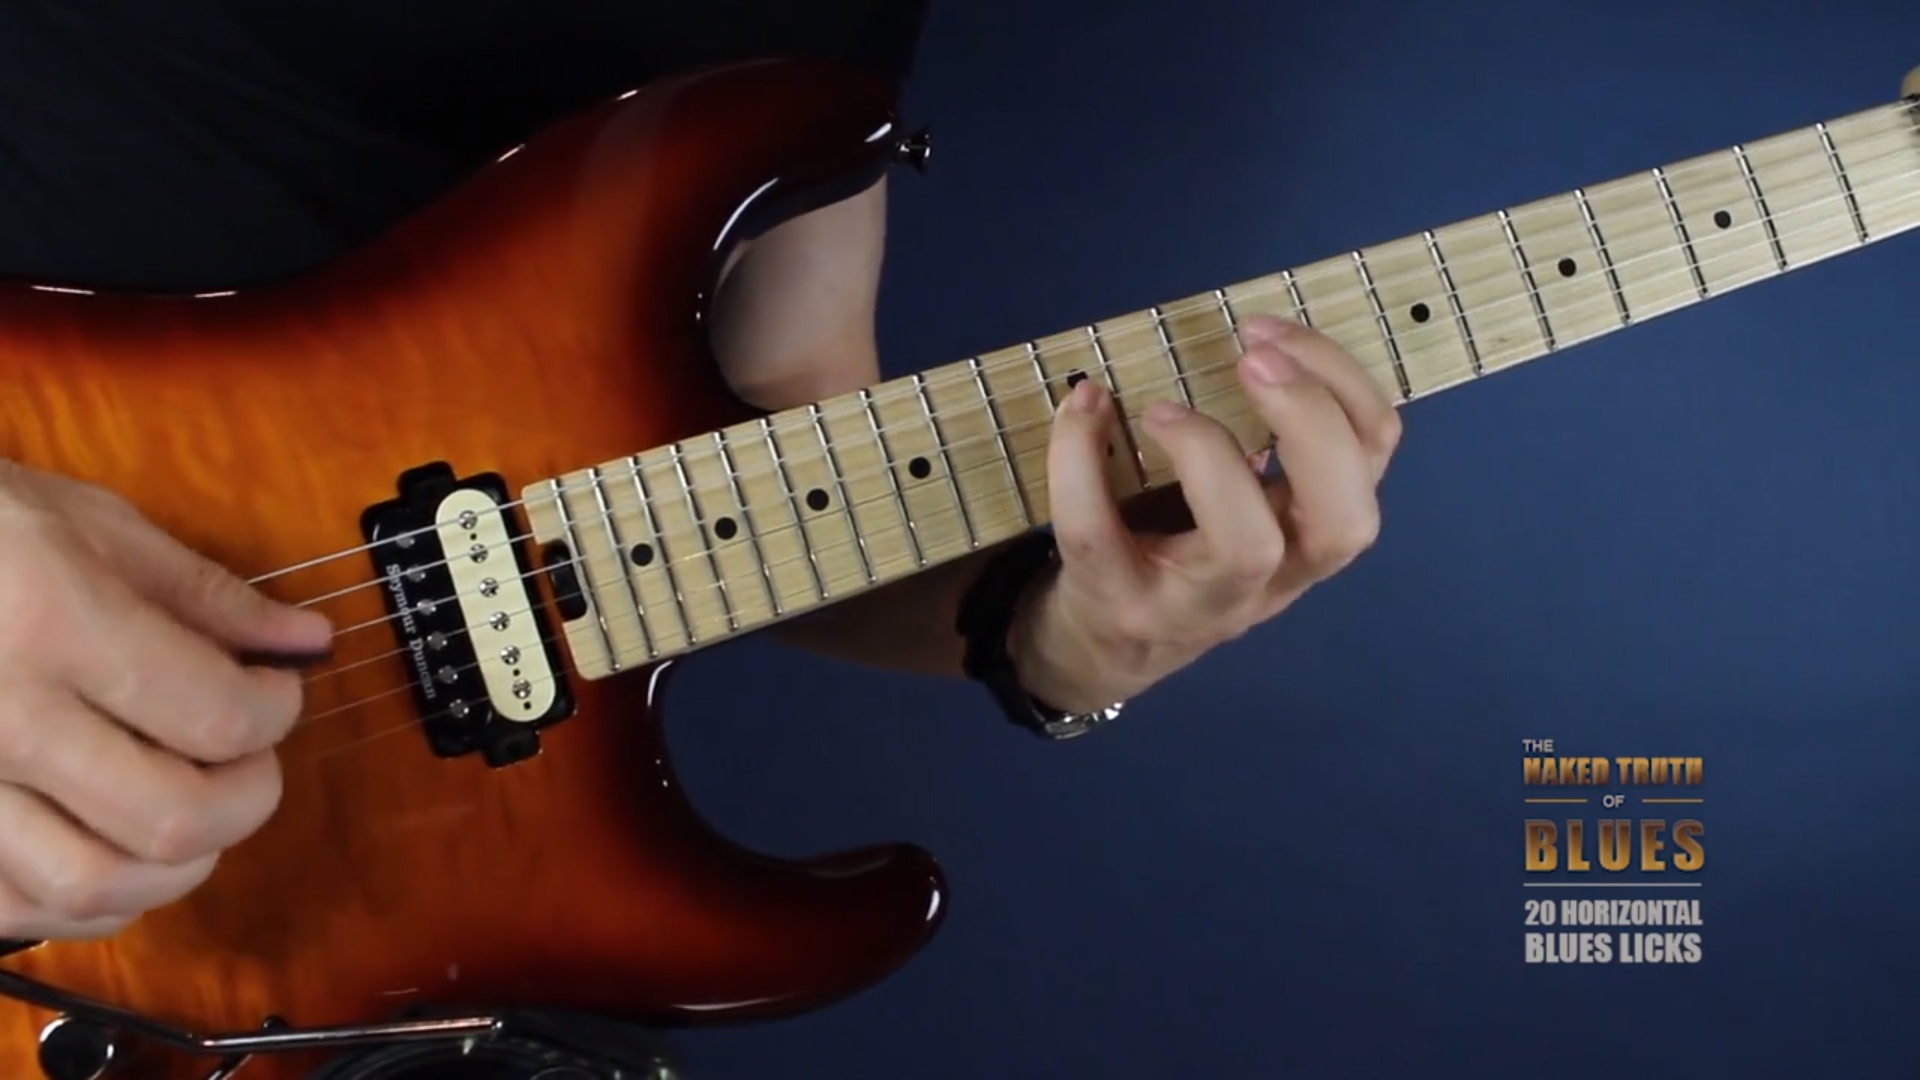 THE NAKED TRUTH OF BLUES | GUITARMASTERY